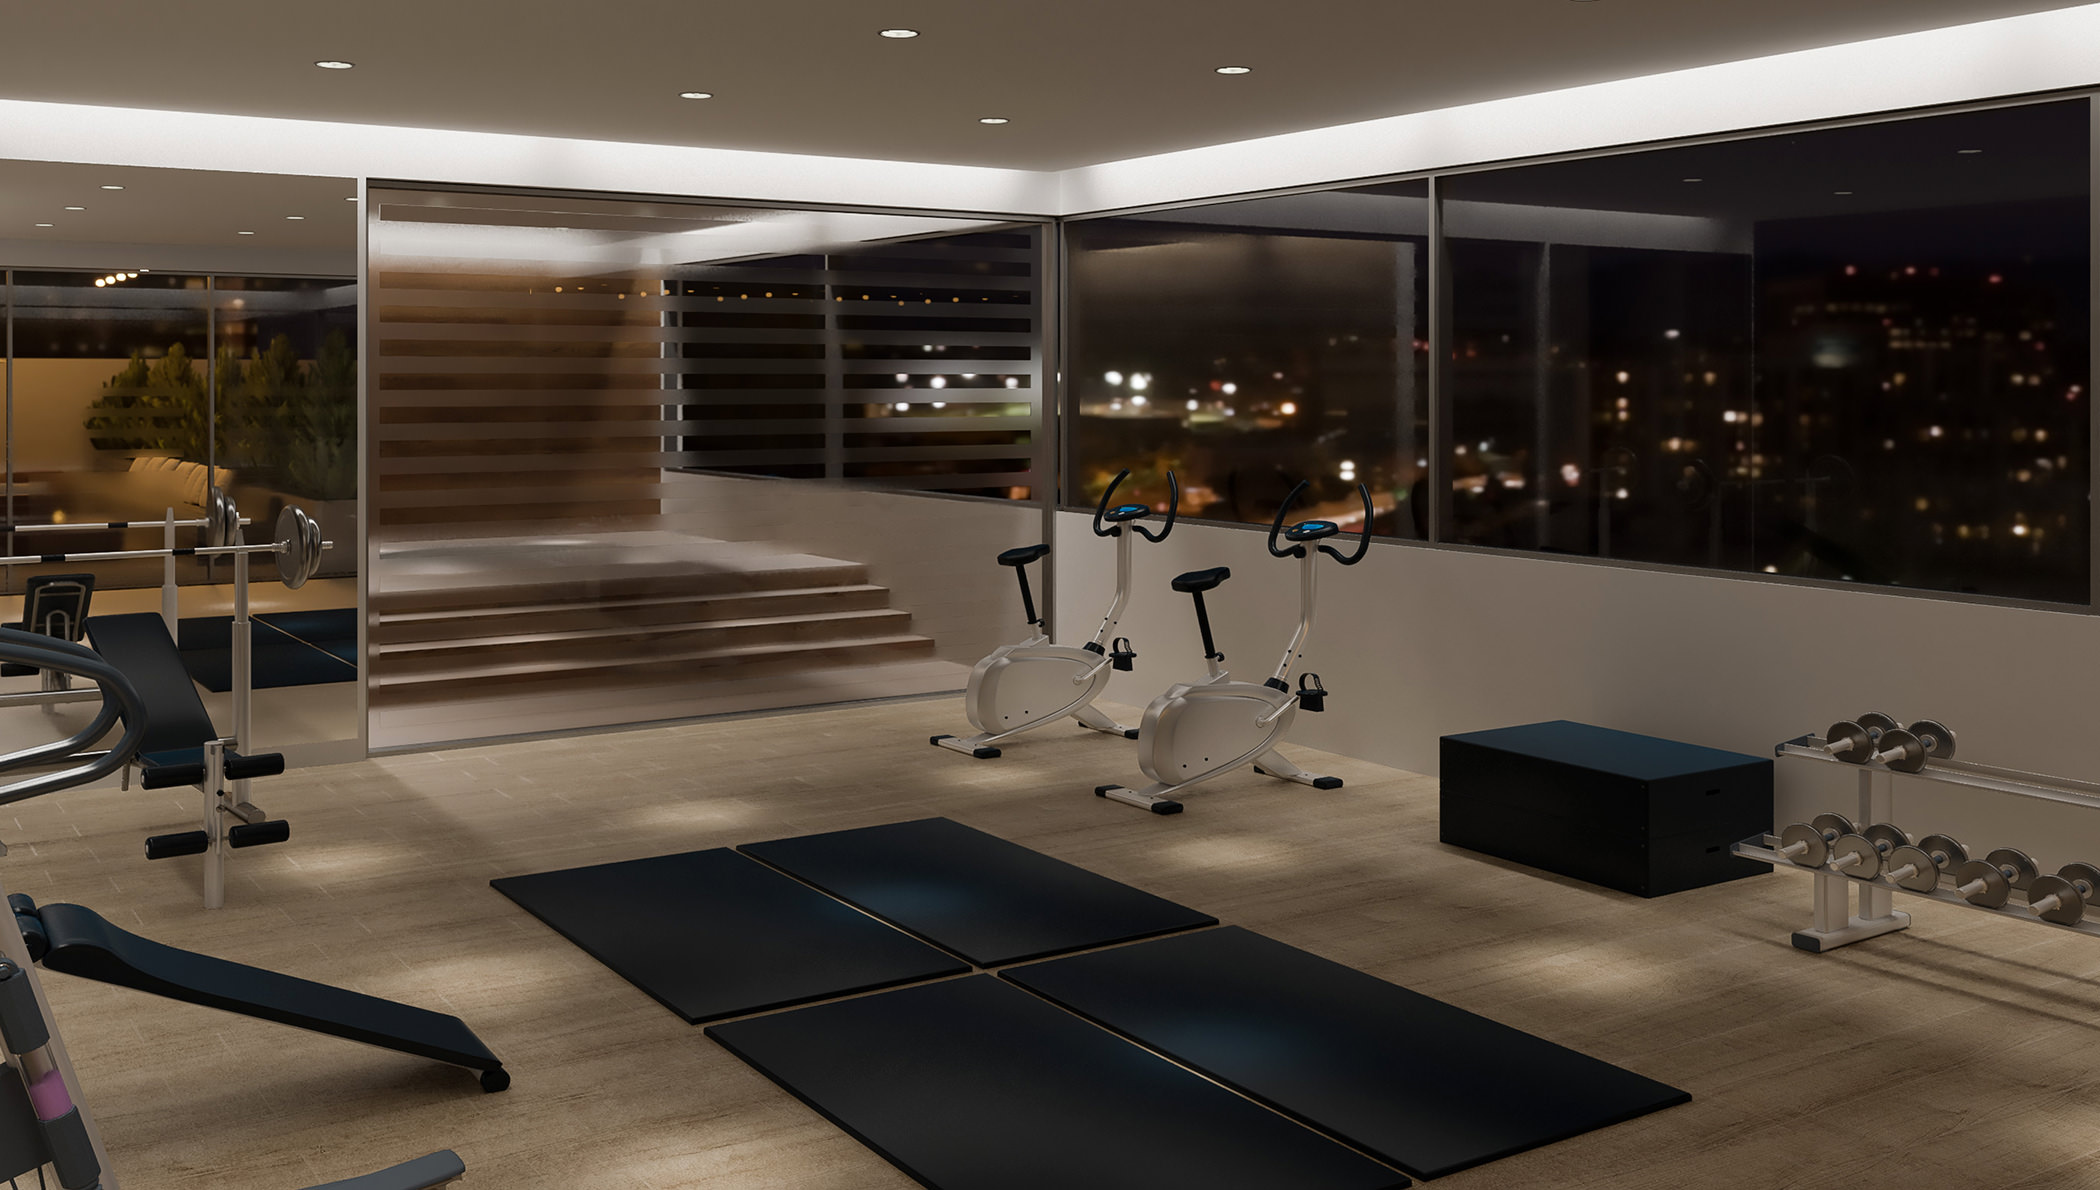 San-Telmo-360-amenities-fitness-center-gimnasio-spa.jpg